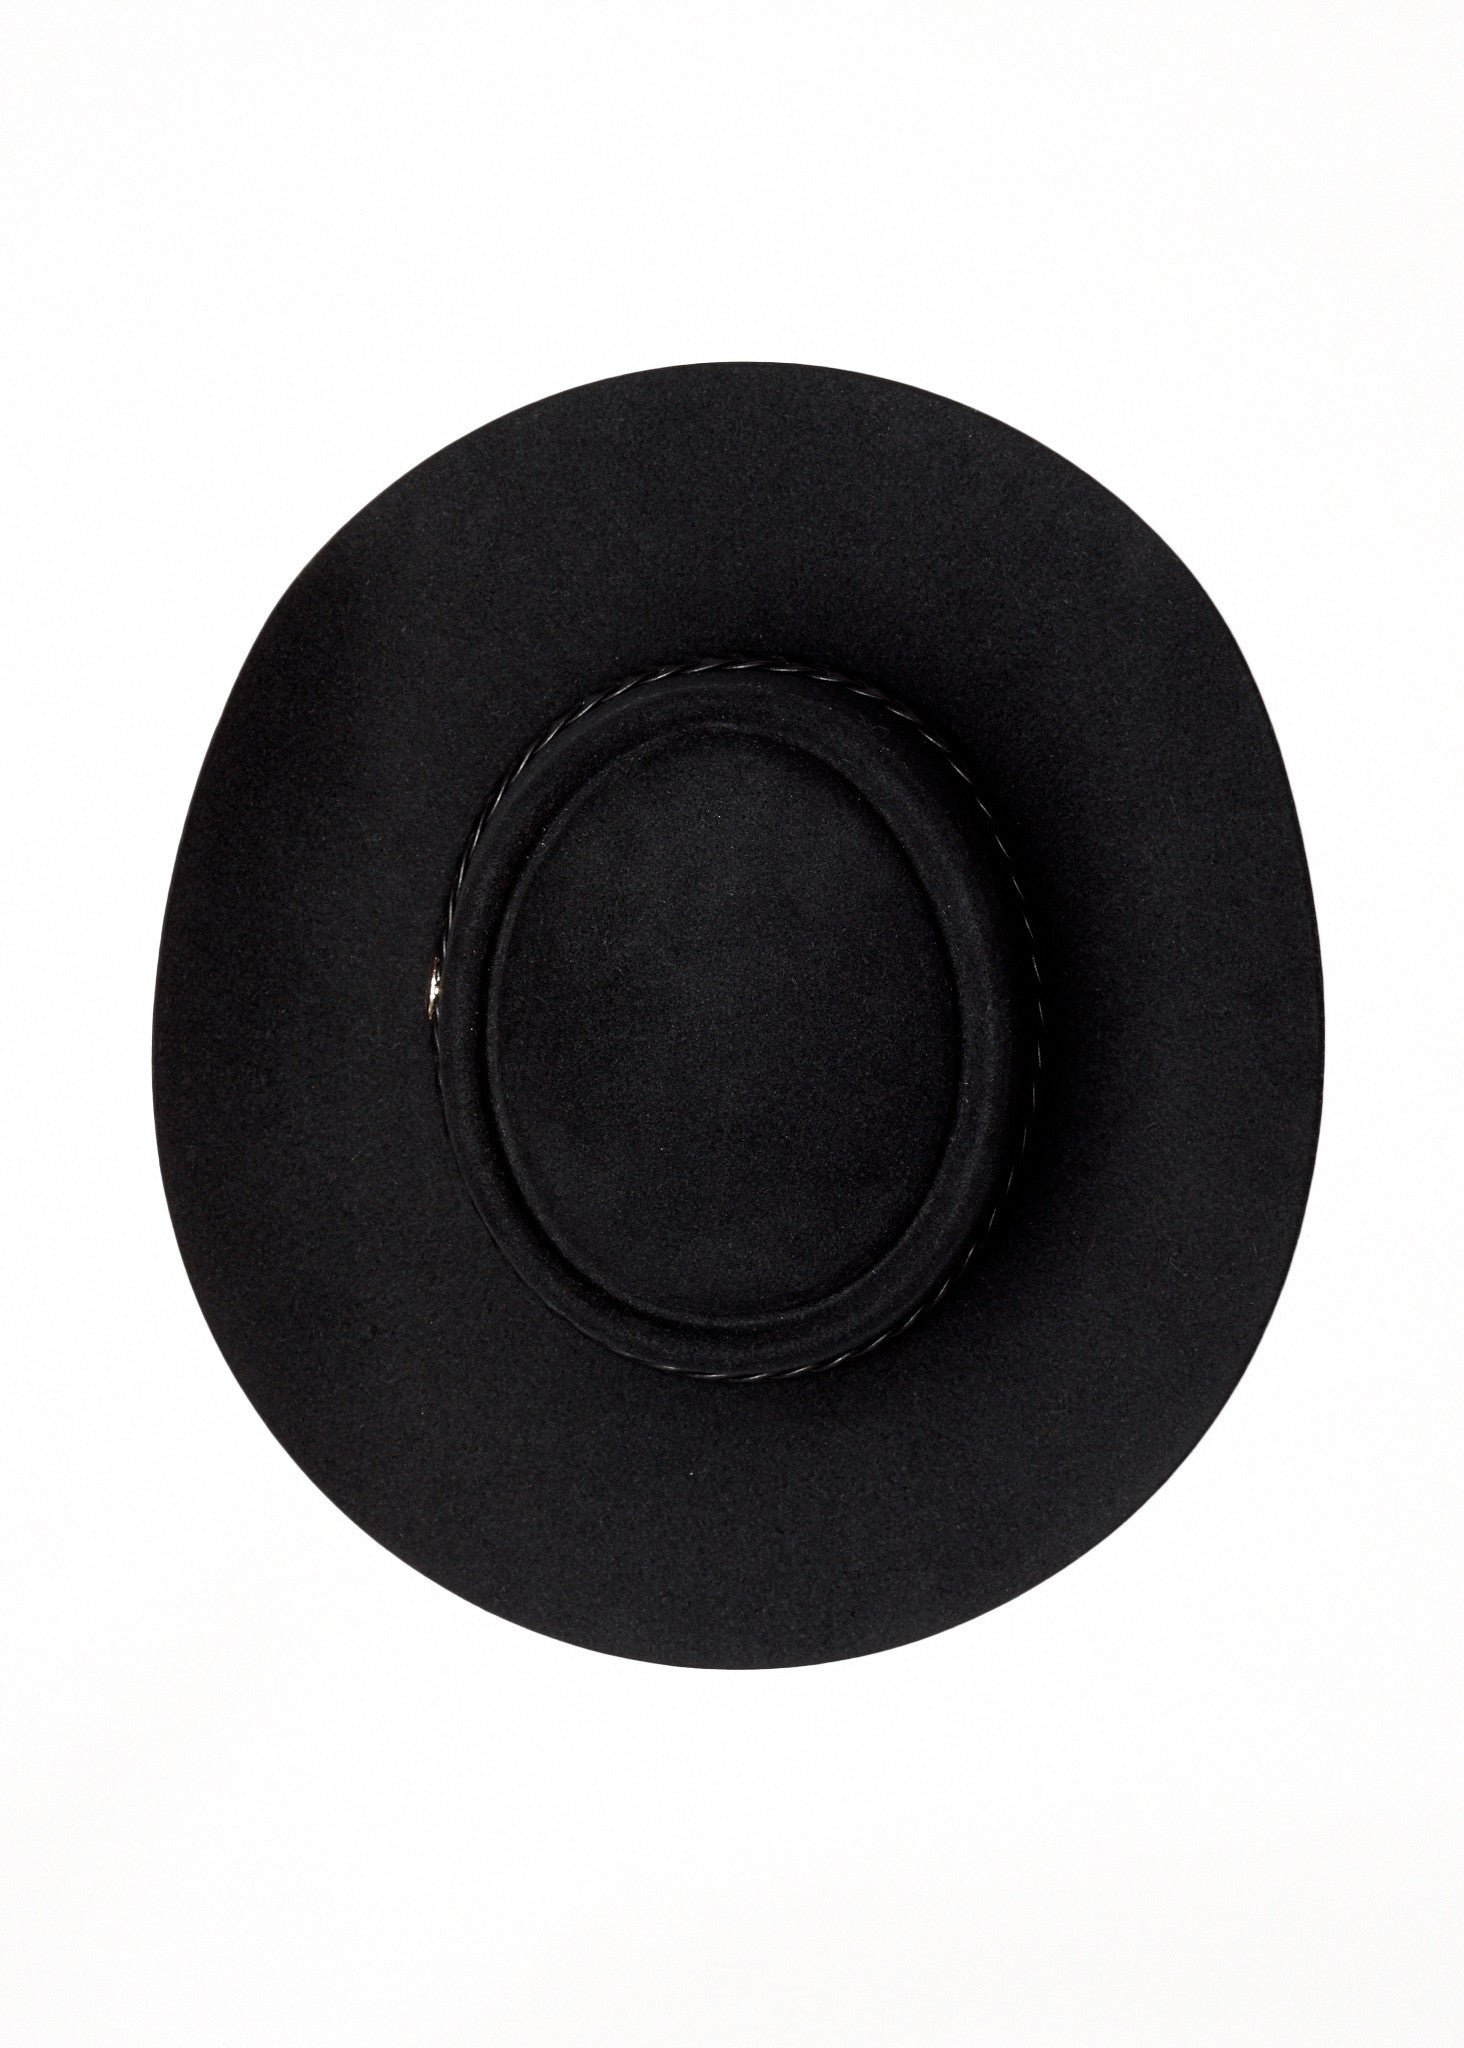 The Lash Stetson Hat - Made Exclusively for Midnight Rider - Hat - Midnight Rider